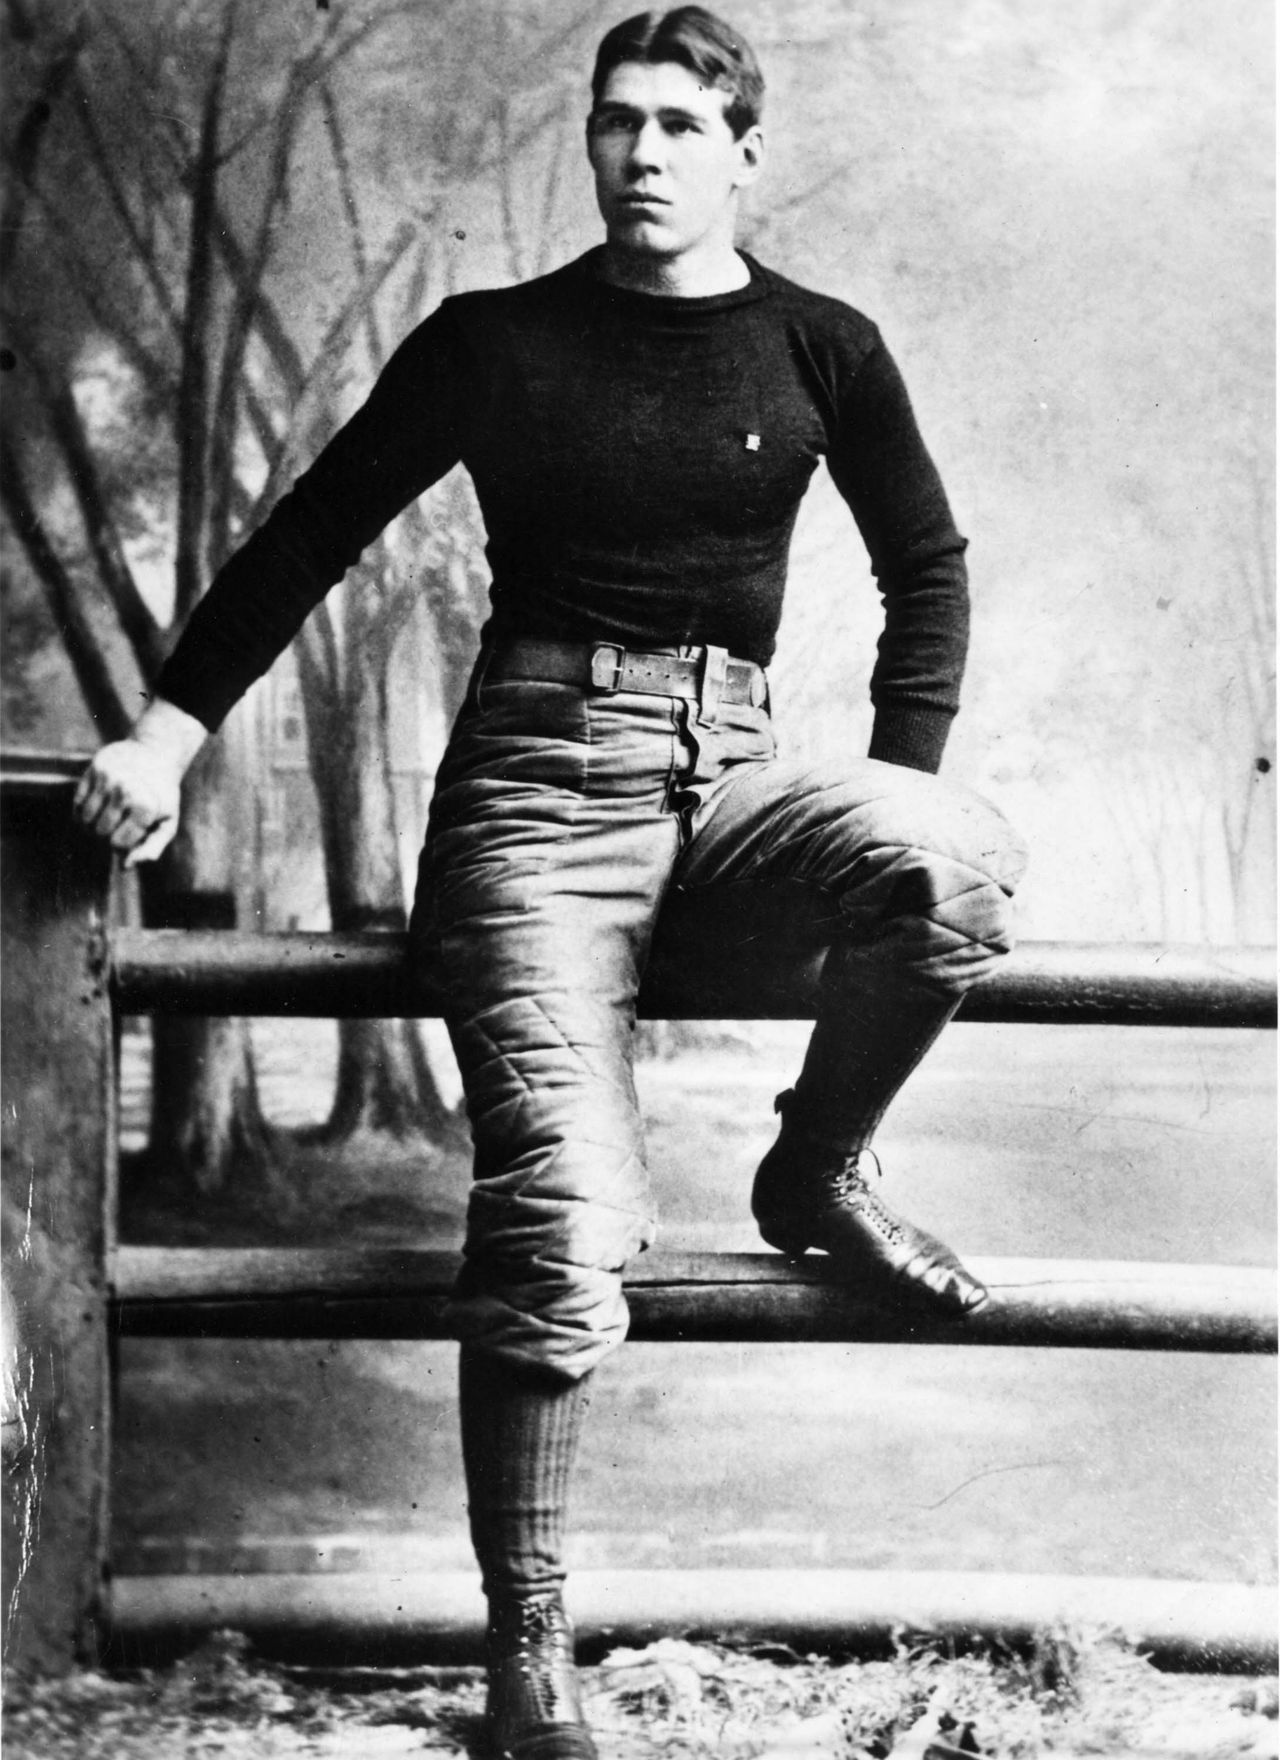 "William ""Pudge"" Heffelfinger is considered to be the first professional football player. For a game against the Pittsburgh Athletic Club, the Allegheny Athletic Association football team paid Heffelfinger $500. While it's entirely possible athletes were paid to play football before this historic day, <a href=""http://www.profootballhof.com/history/general/birth_certificate.aspx"" target=""new"">an accounting ledger</a> provides documented proof that Heffelfinger was paid to play football. Heffelfinger was worth the expense, as he recovered a fumble and returned it for a touchdown for the game's only score in a 4-0 Alleghany Athletic Club triumph."